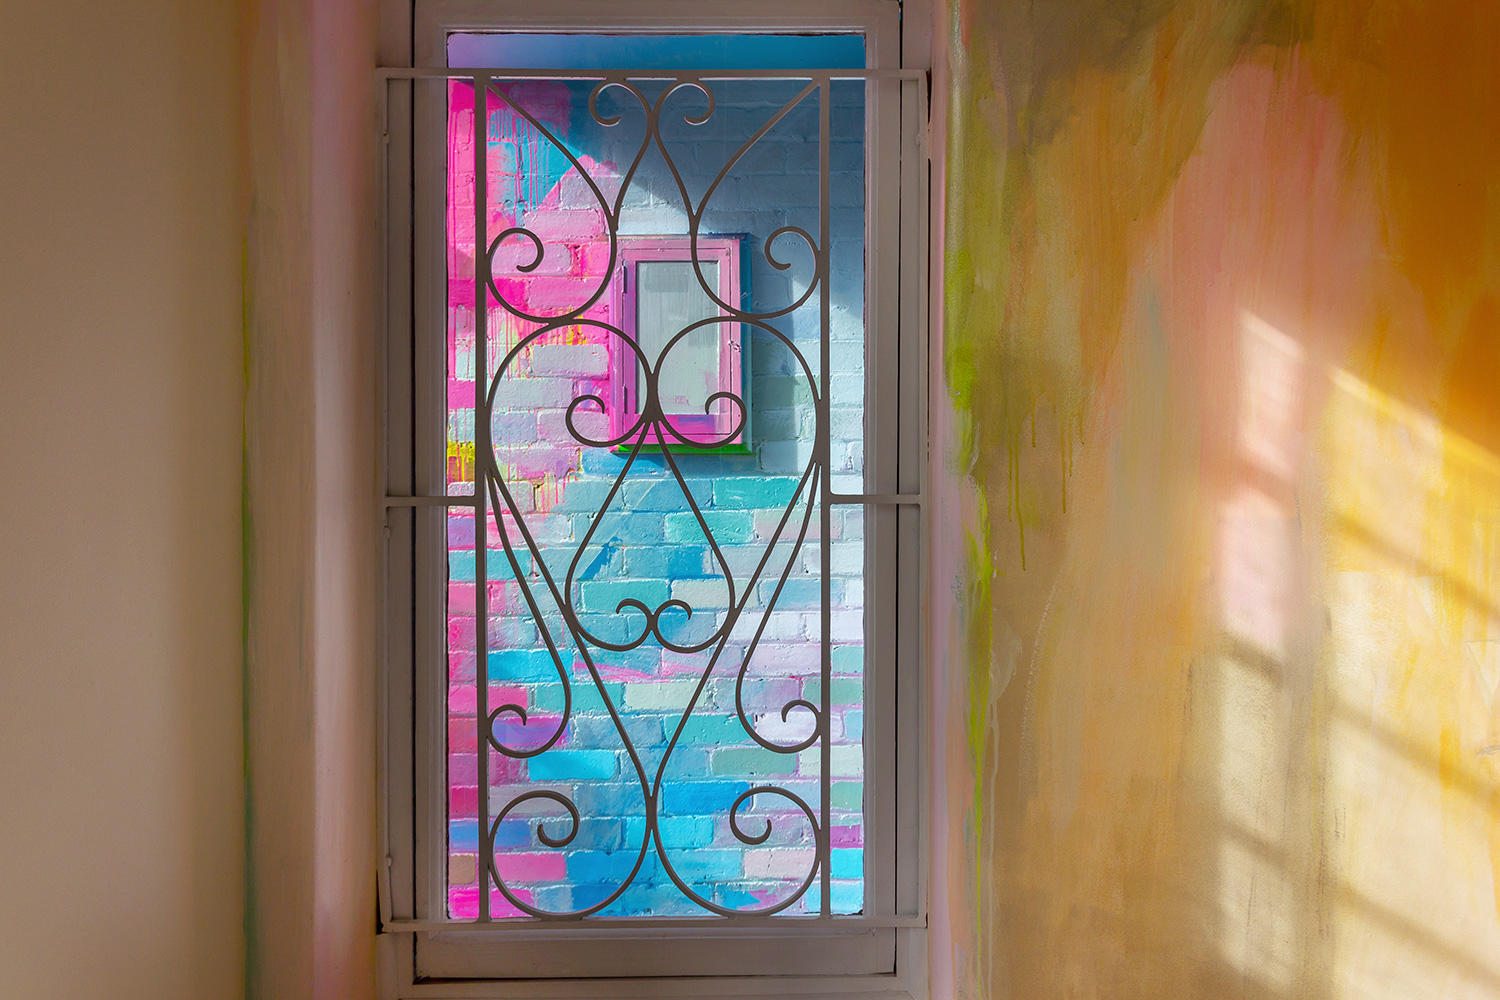 A window provides a glimpse at a vibrant abstract mural on the wall outside.